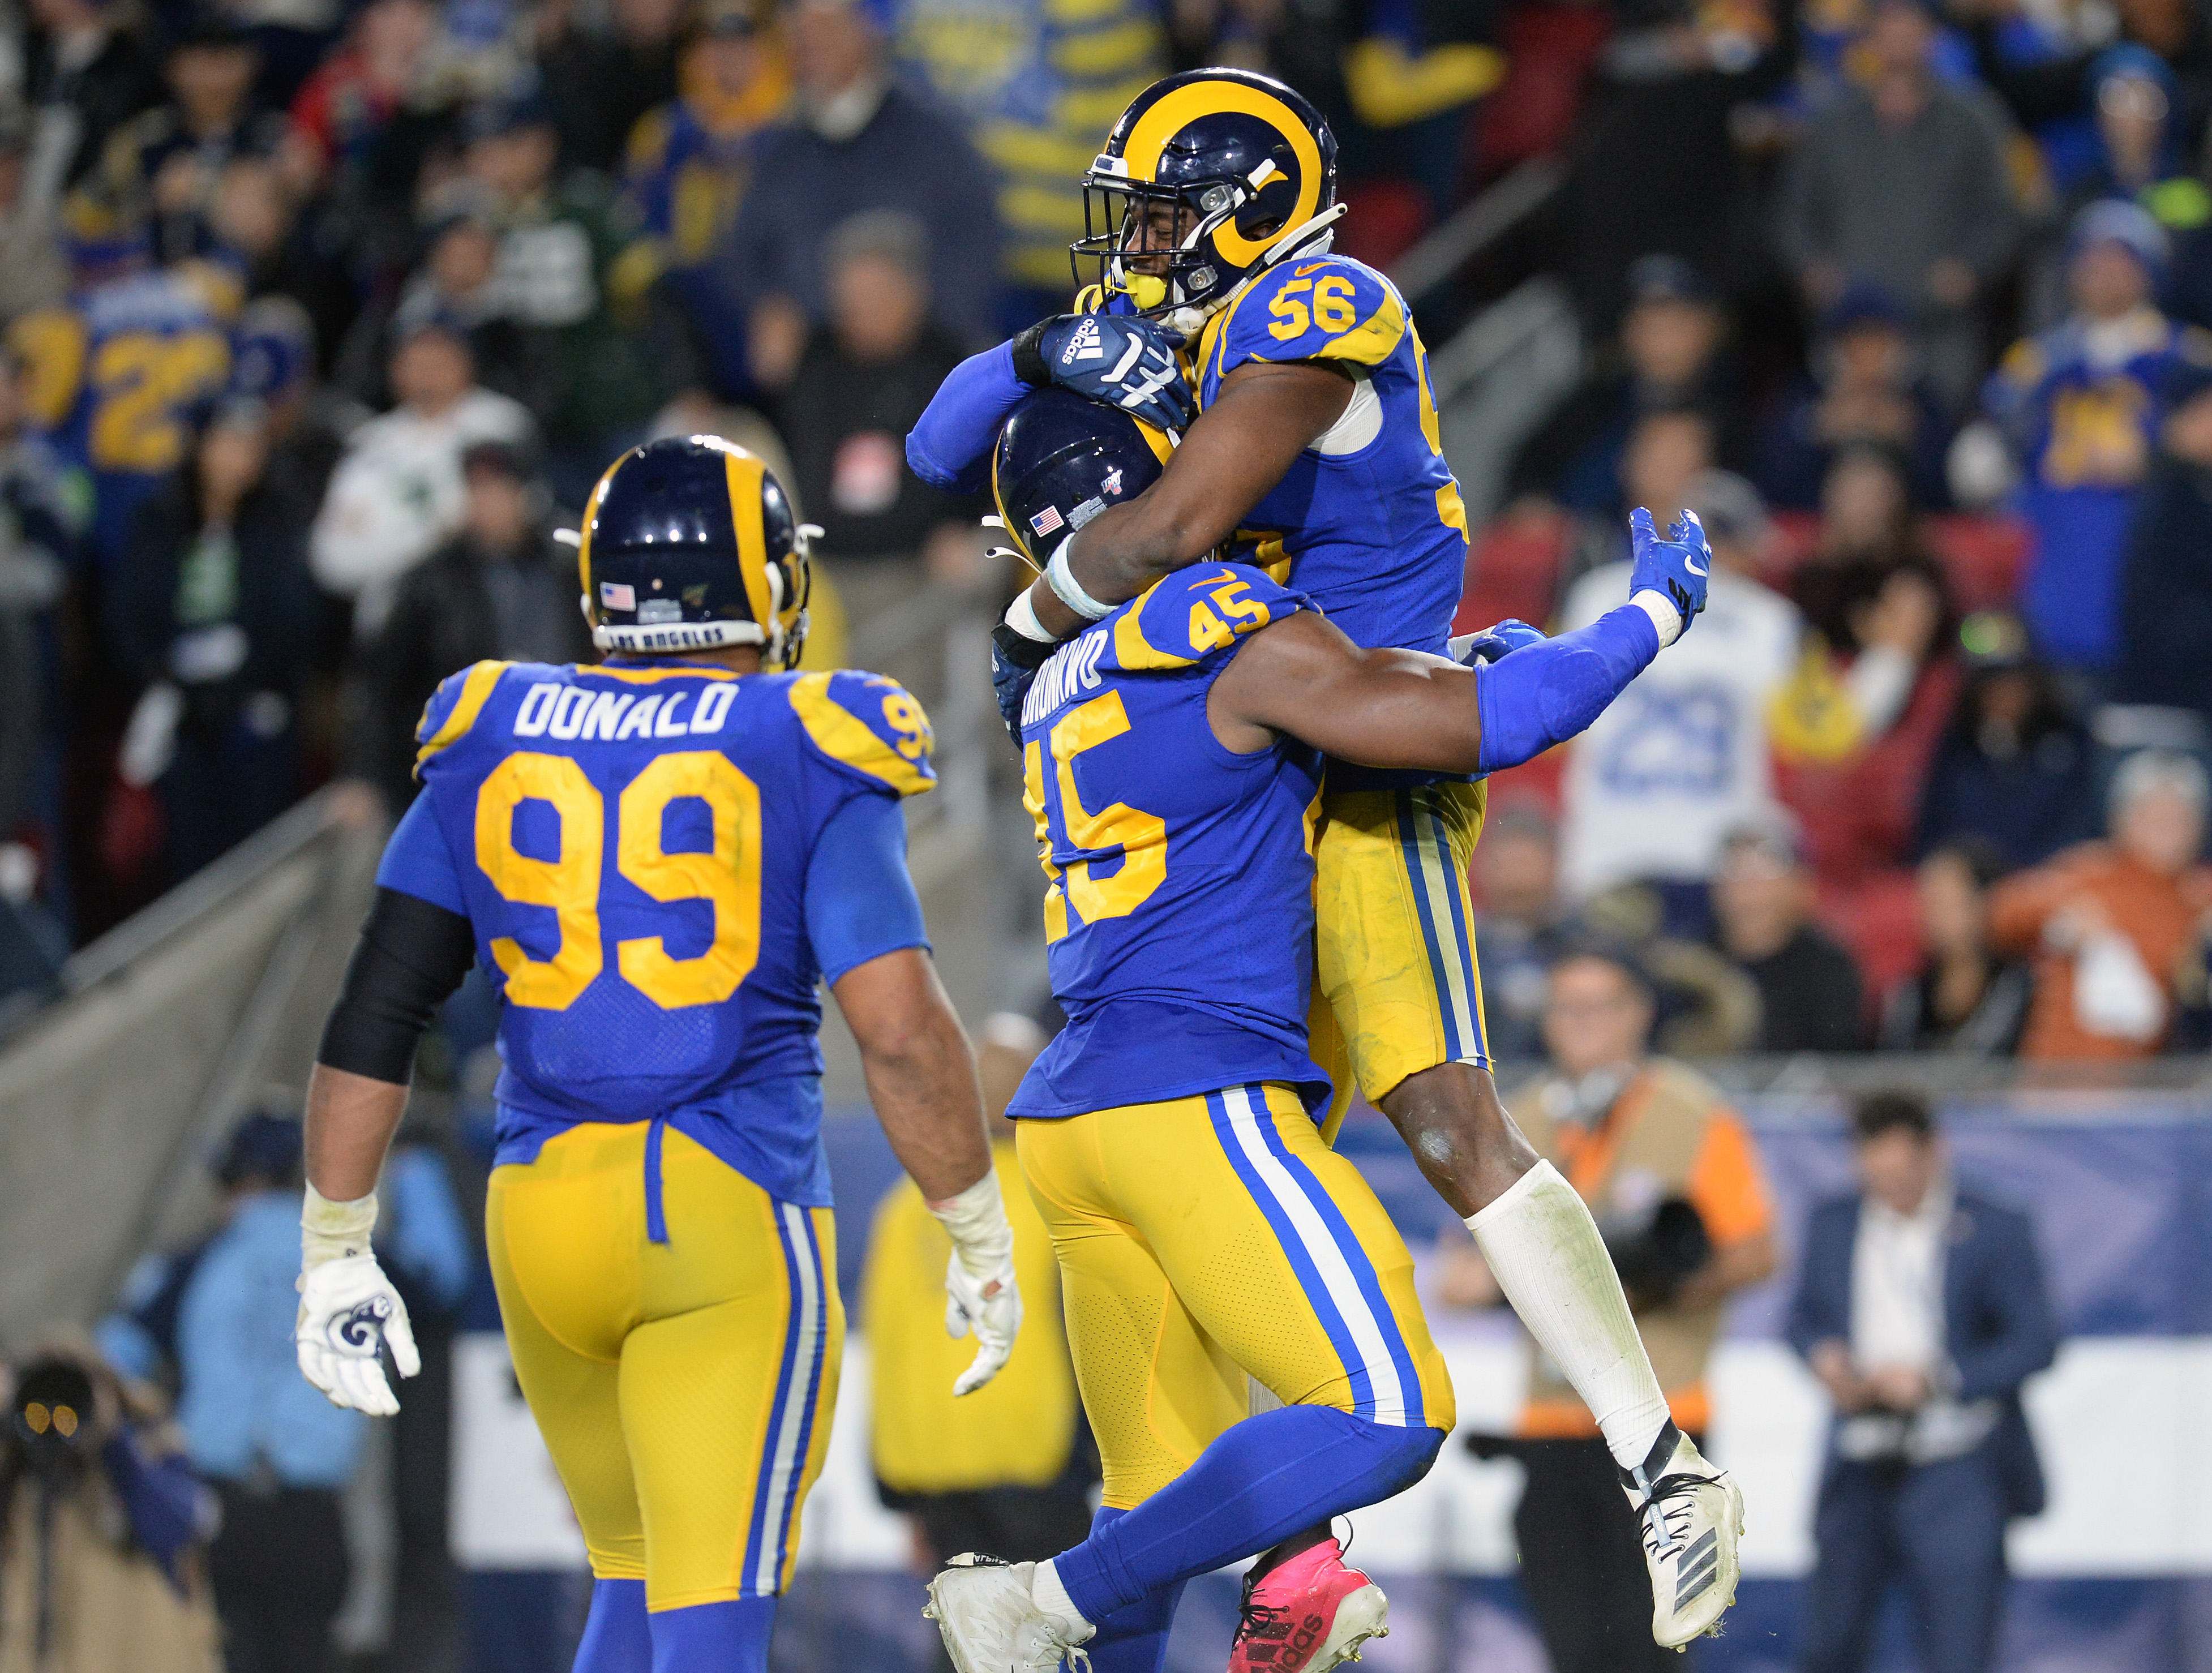 Los Angeles Rams EDGE Dante Fowler, Jr., celebrates with EDGE Ogbonnia Okoronkwo and DL Aaron Donald after sacking Seattle Seahawks QB Russell Wilson in Week 14, Dec. 8, 2019.